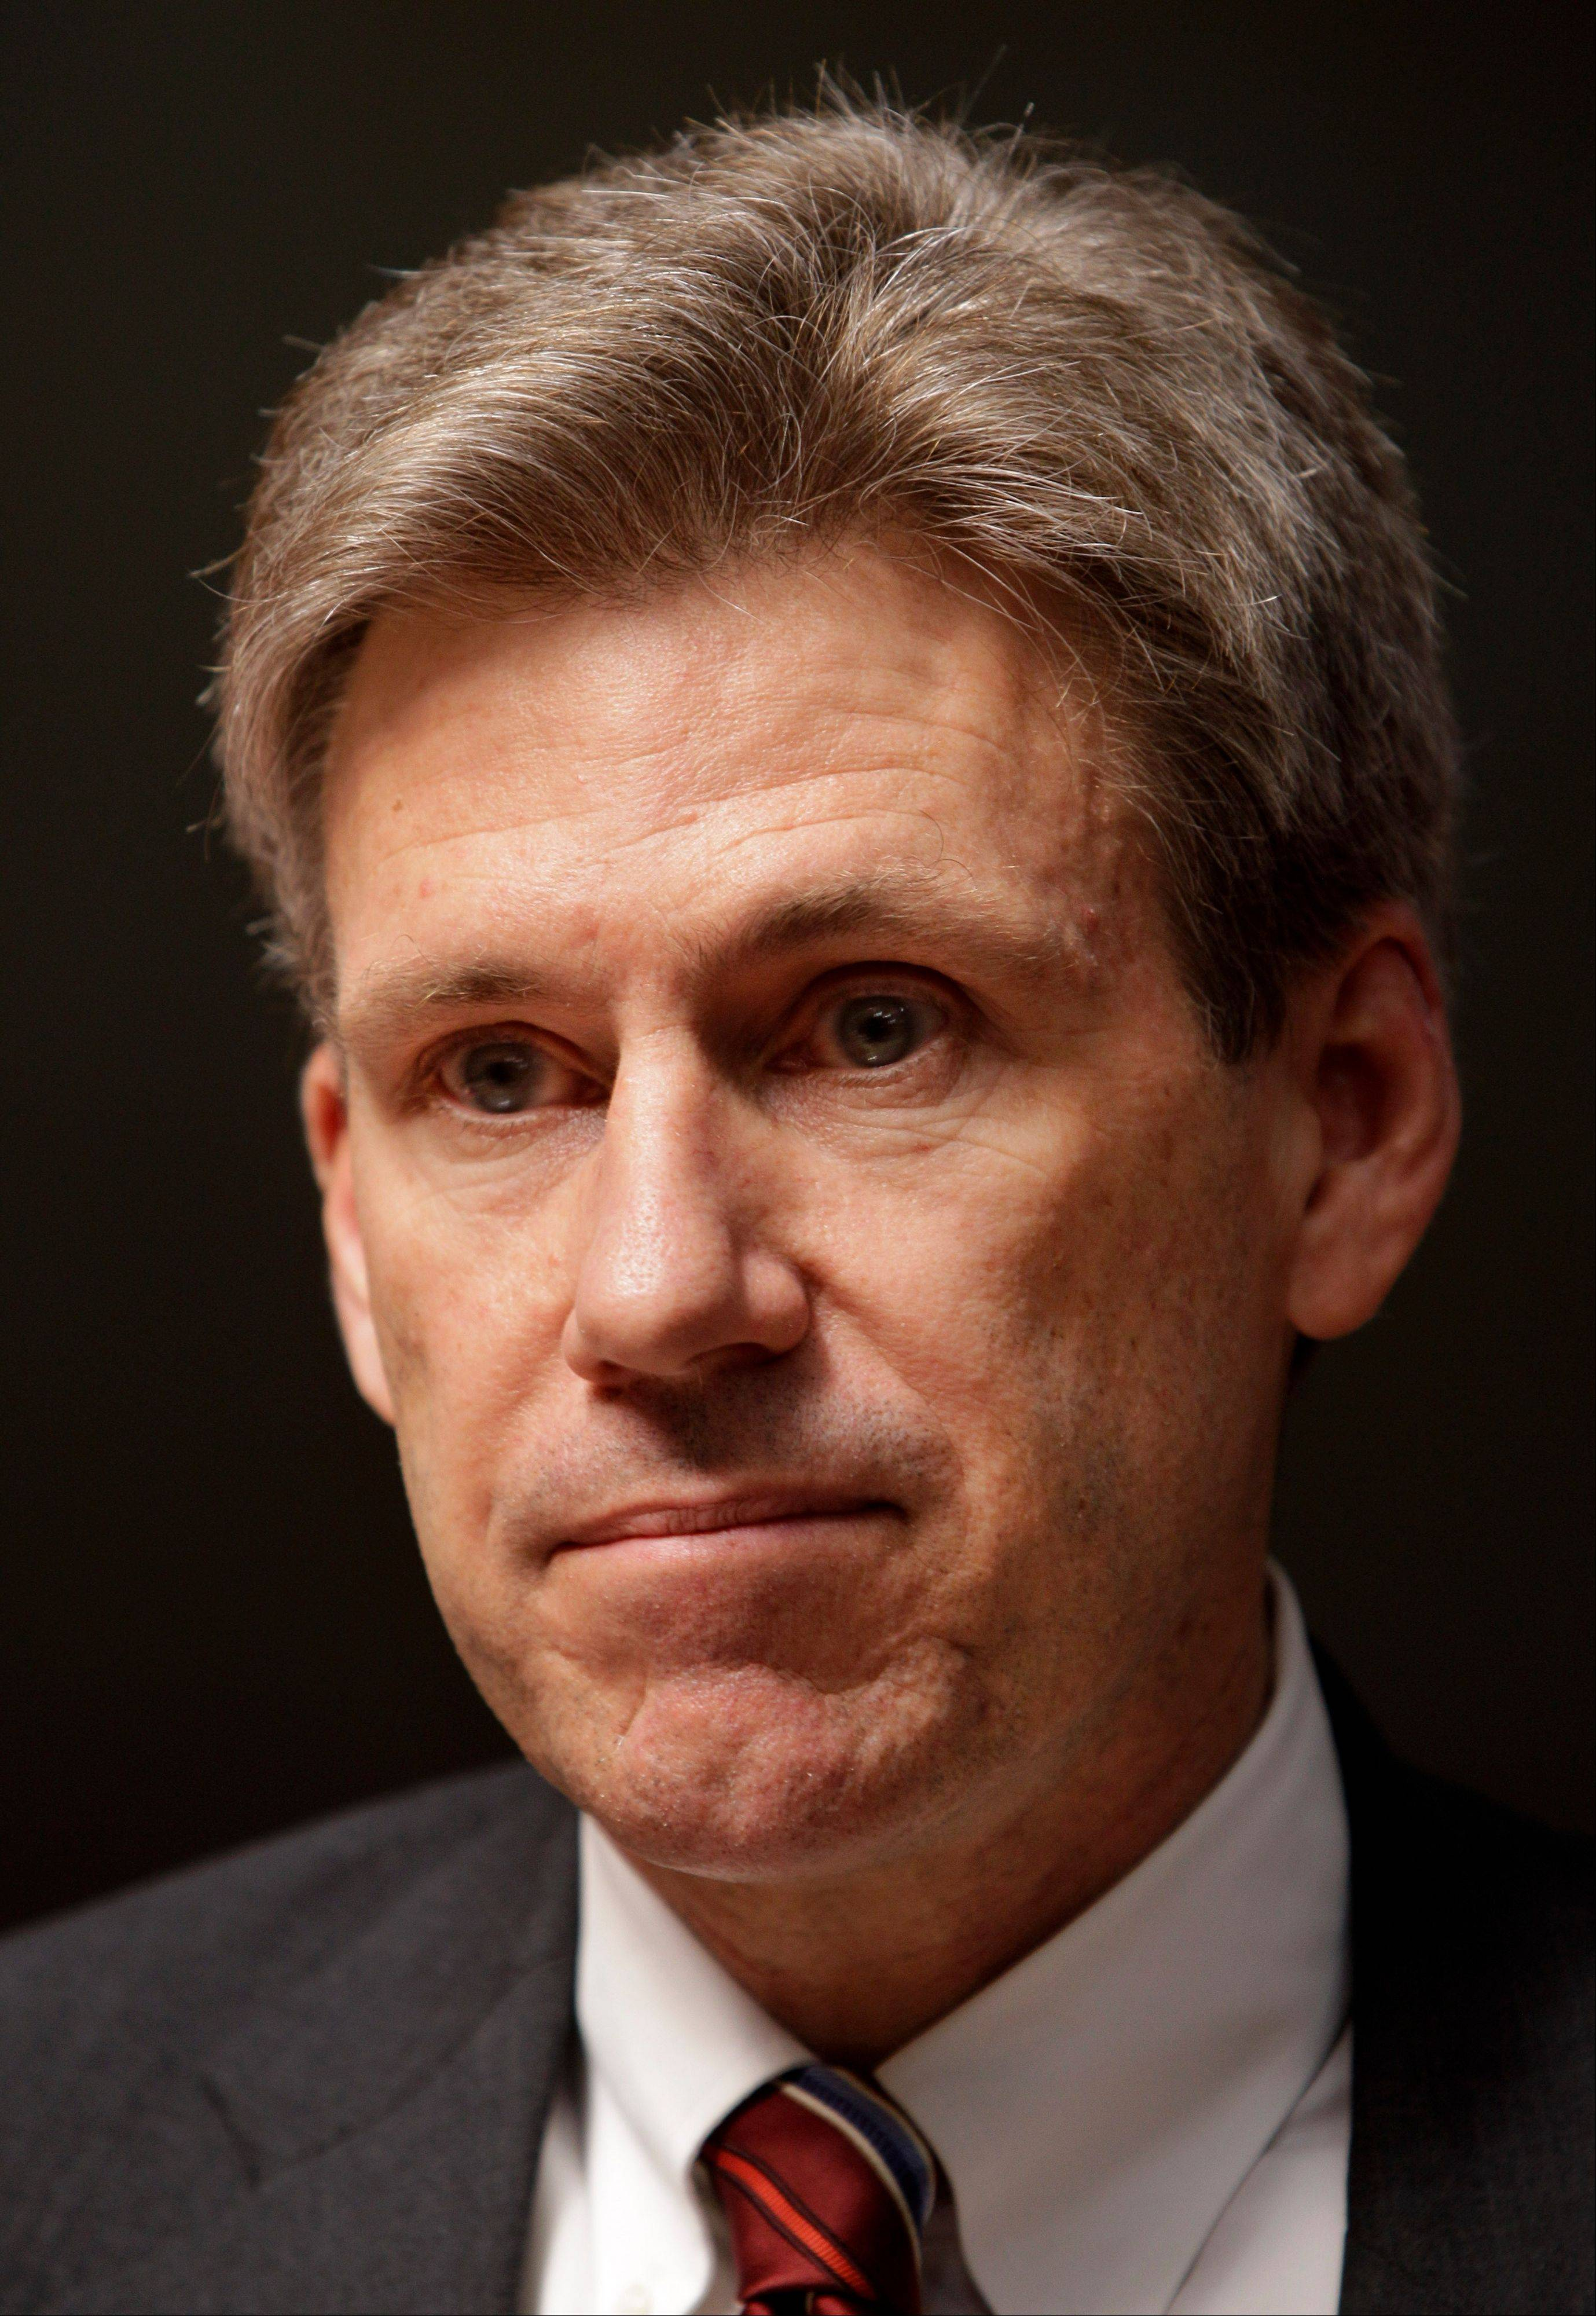 Libyan officials say Ambassador Chris Stevens was killed Tuesday night when he and a group of embassy employees went to the consulate to try to evacuate staff members. Now U.S. officials are investigating whether the attack on the consulate was really a plot.